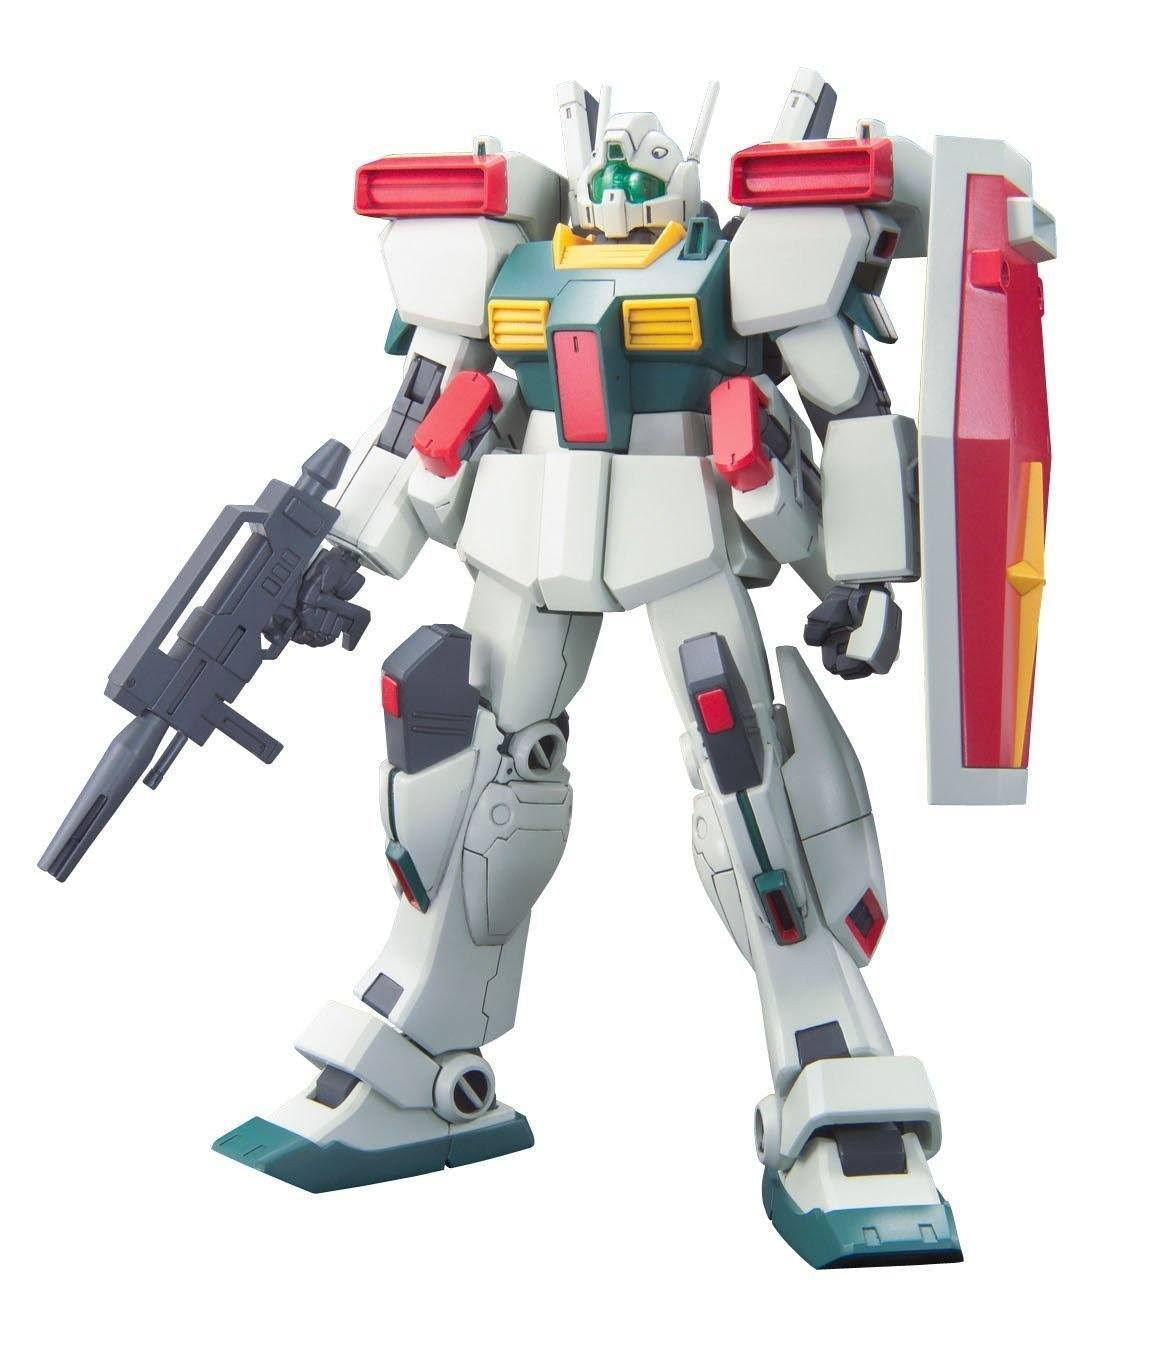 Bandai Hobby RGM-86R GM III Mobile Suit Gundam Model Kit - Scale 1:144